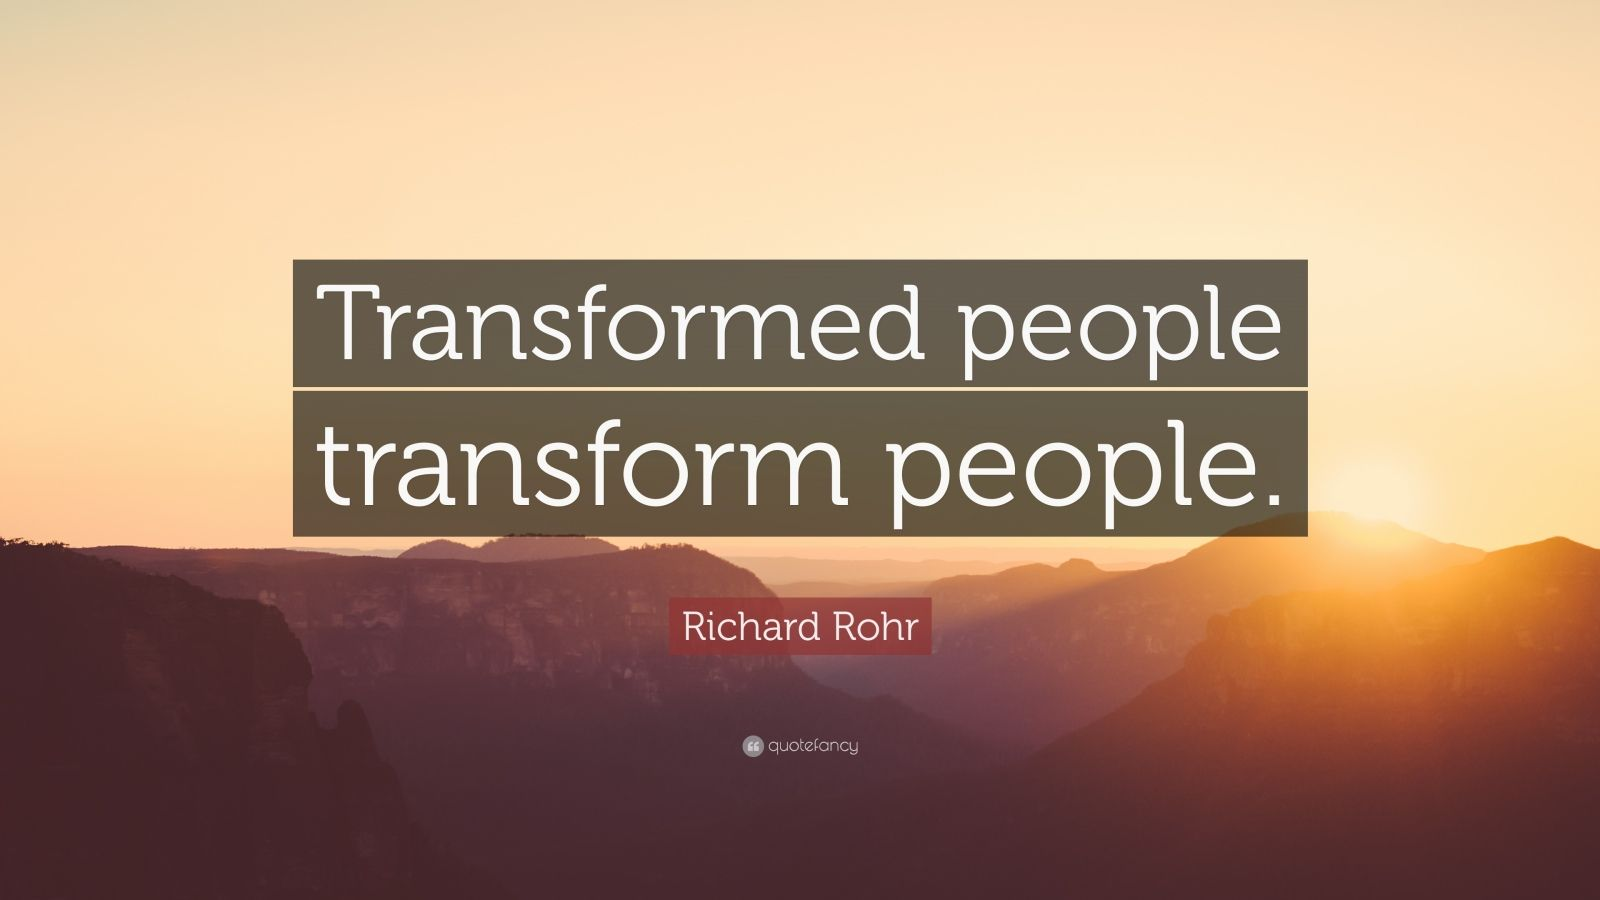 Richard Rohr Quotes  100 wallpapers    Quotefancy Richard Rohr Quotes